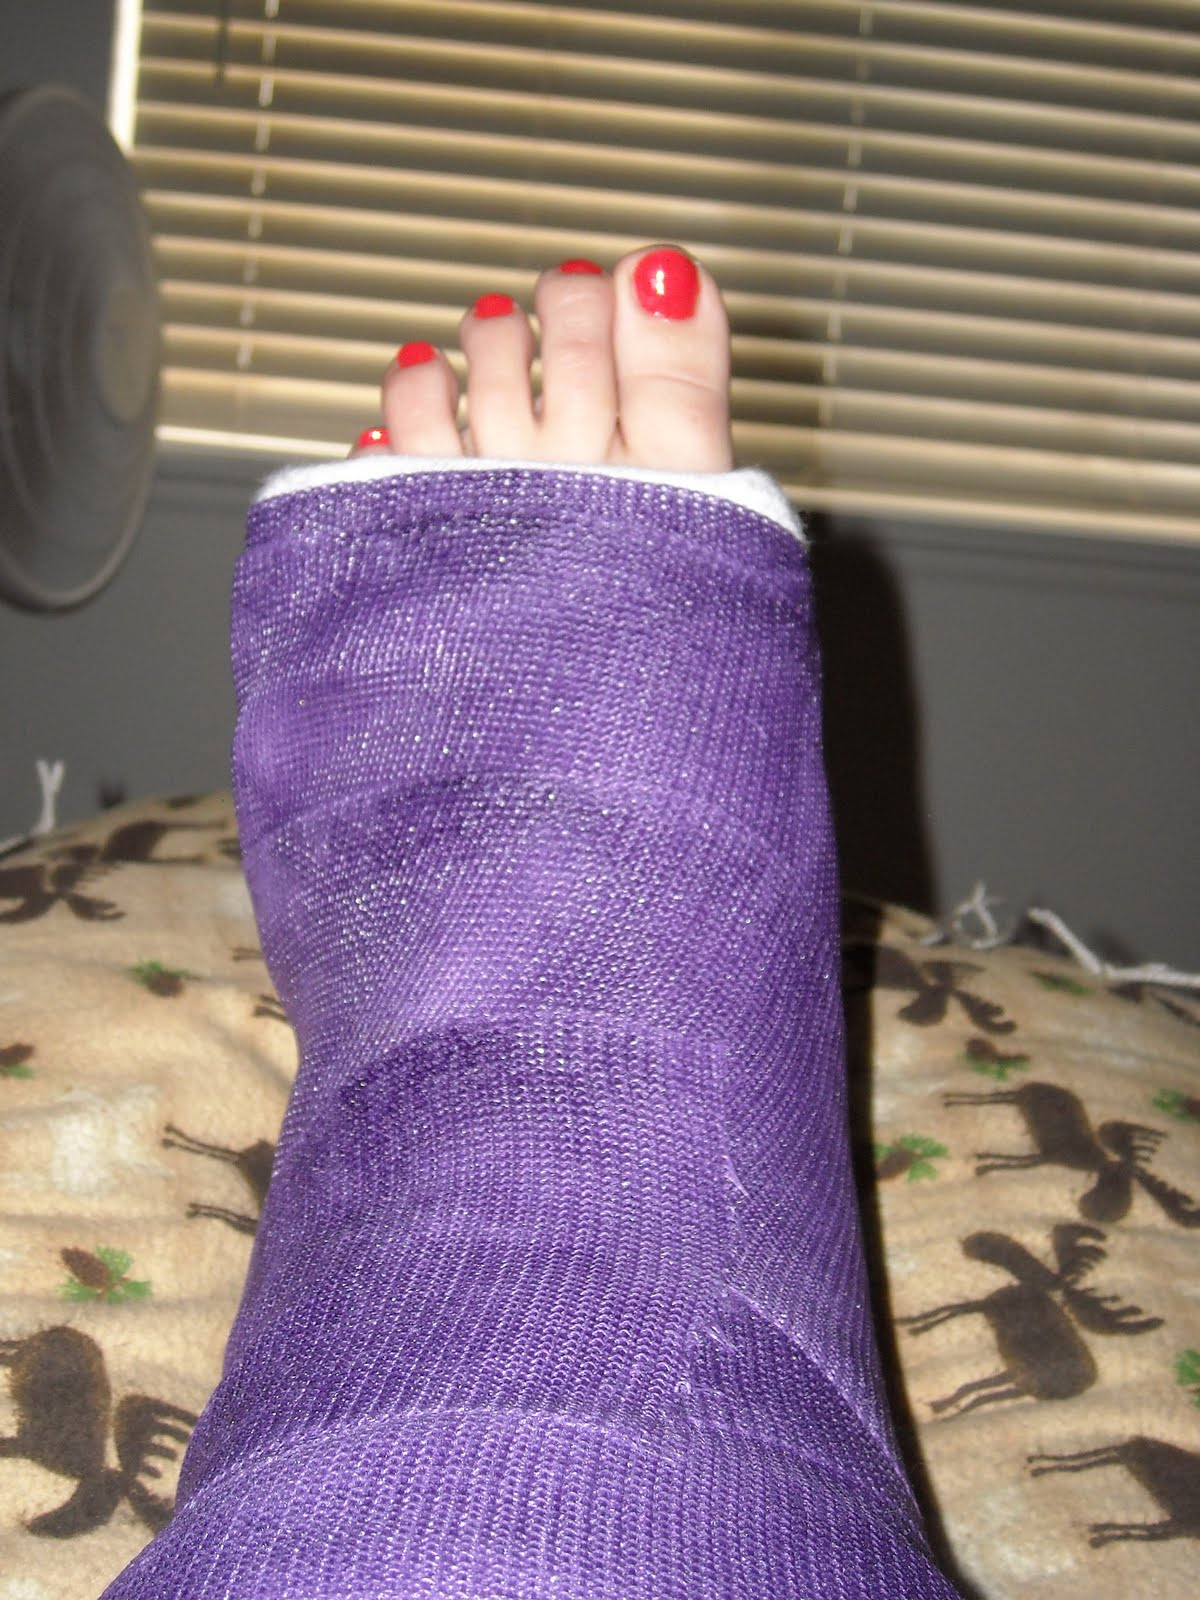 Doll Leg Cast http://thephoenixmovie.com/fcms/purple-leg-cast